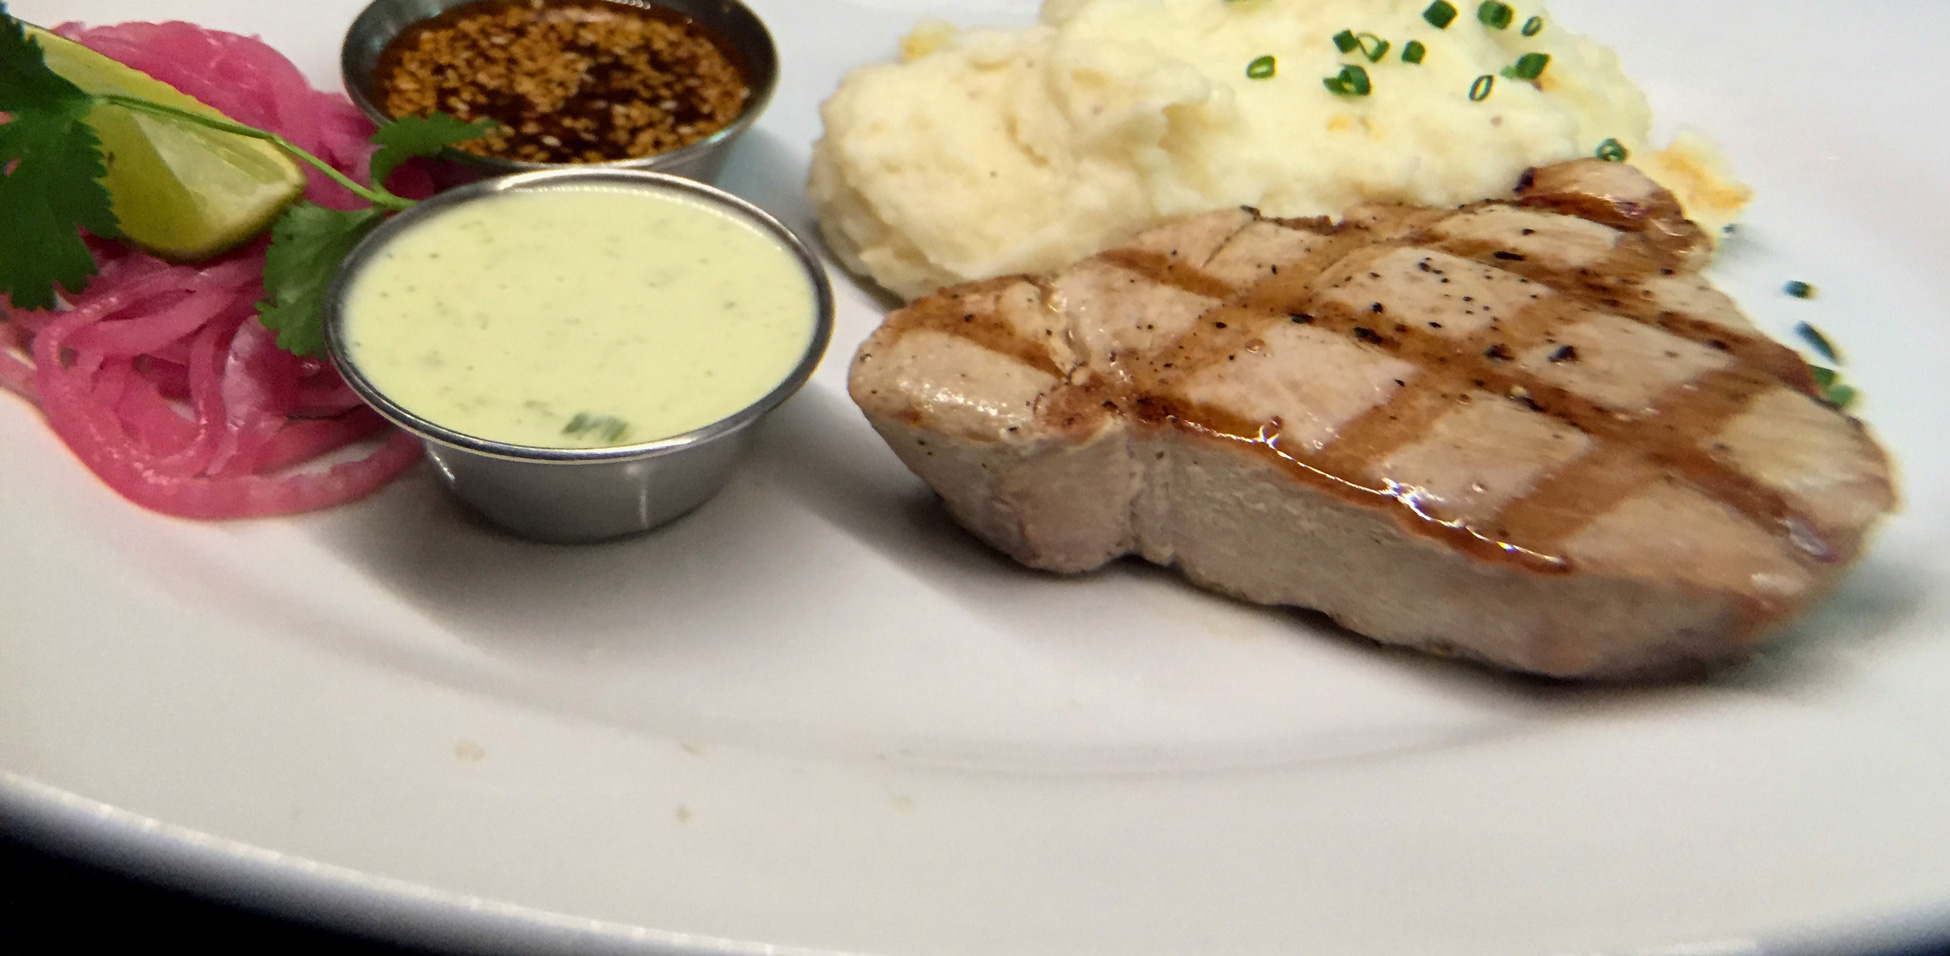 wcyc-Landscape-Tuna-and-Garlic-Mash